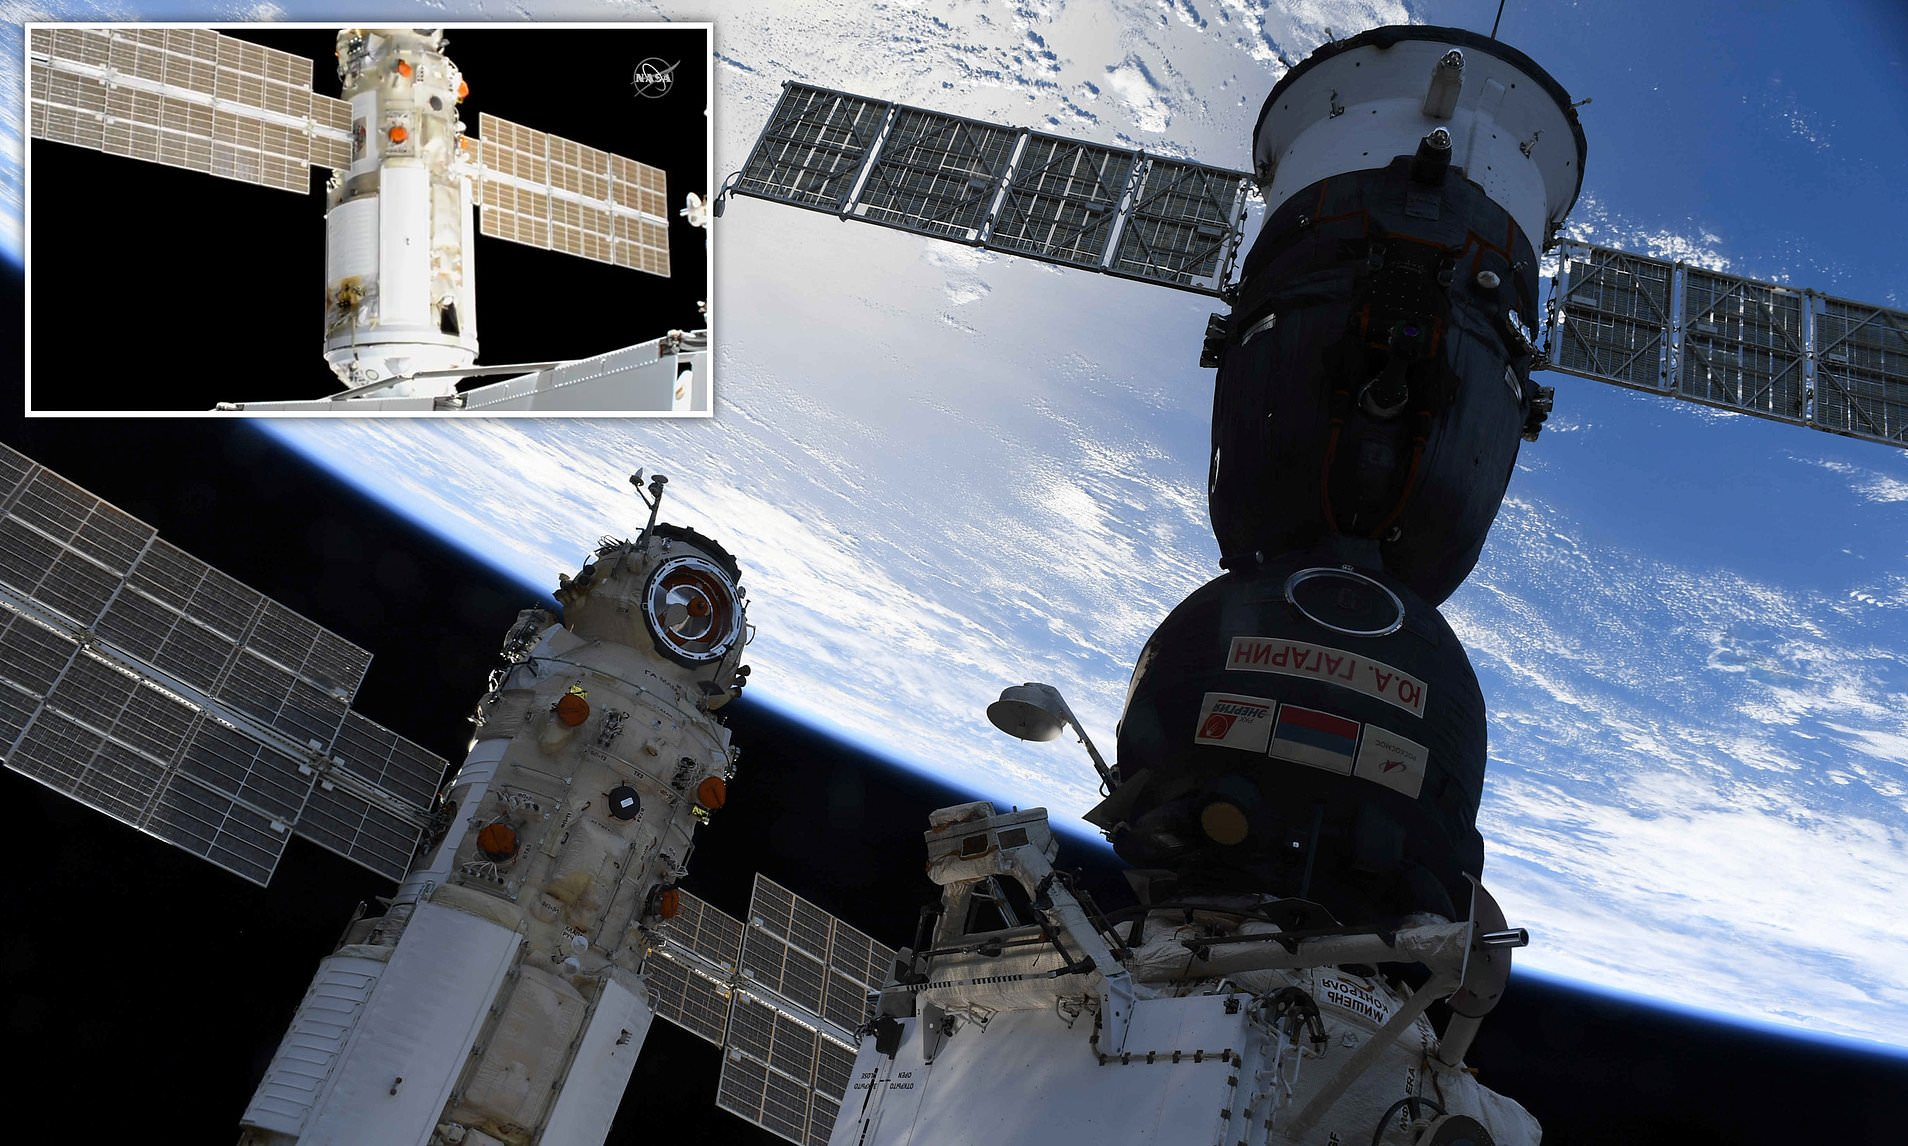 International Space Station lost control after Russian module misfire